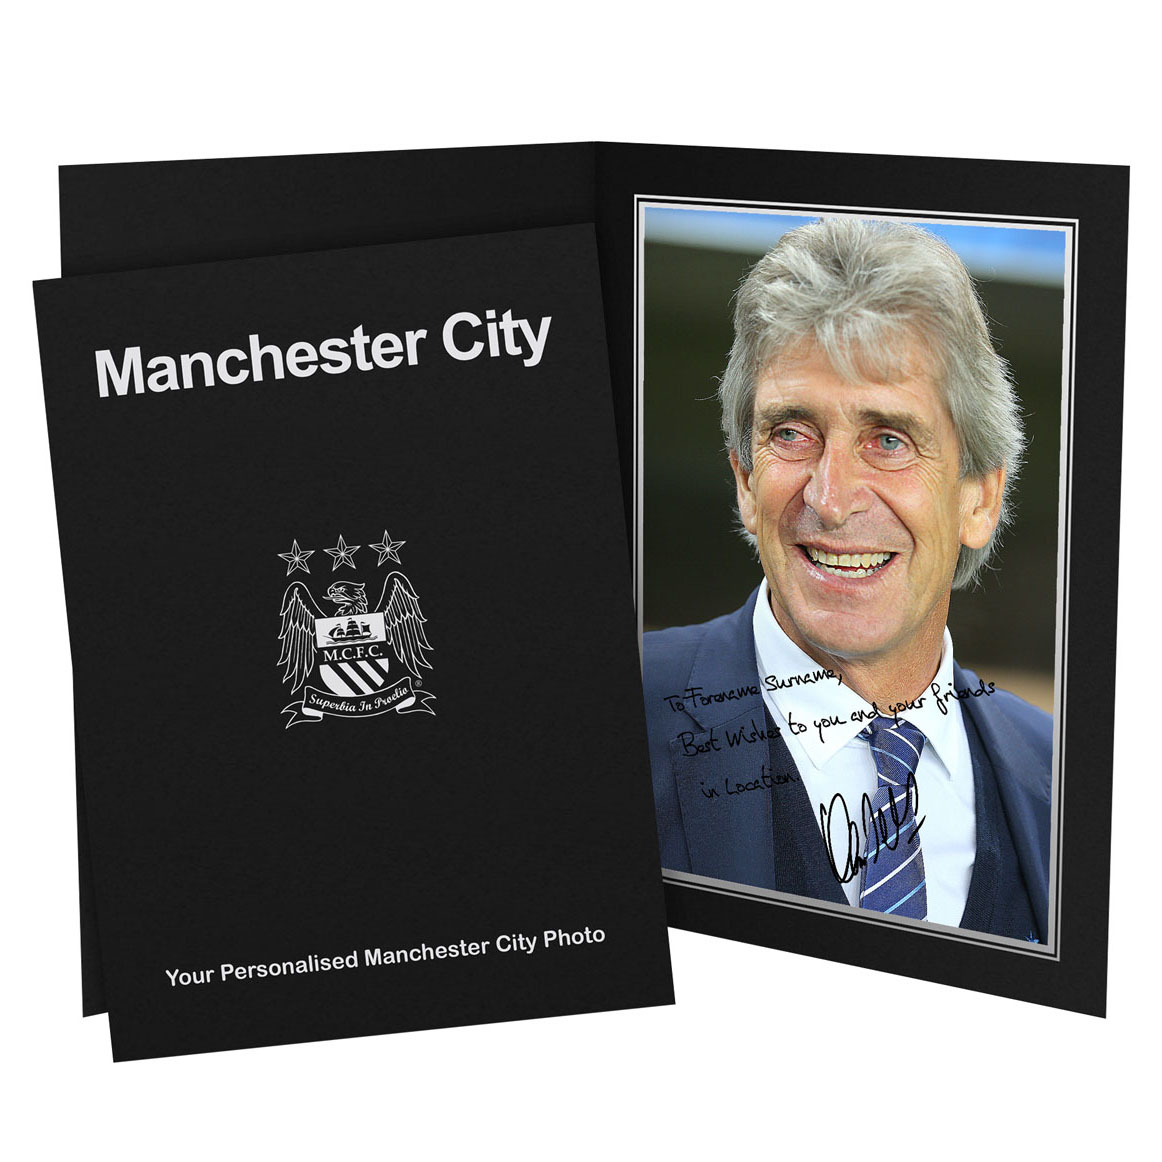 Manchester City Personalised Signature Photo in Presentation Folder - Pellegrini